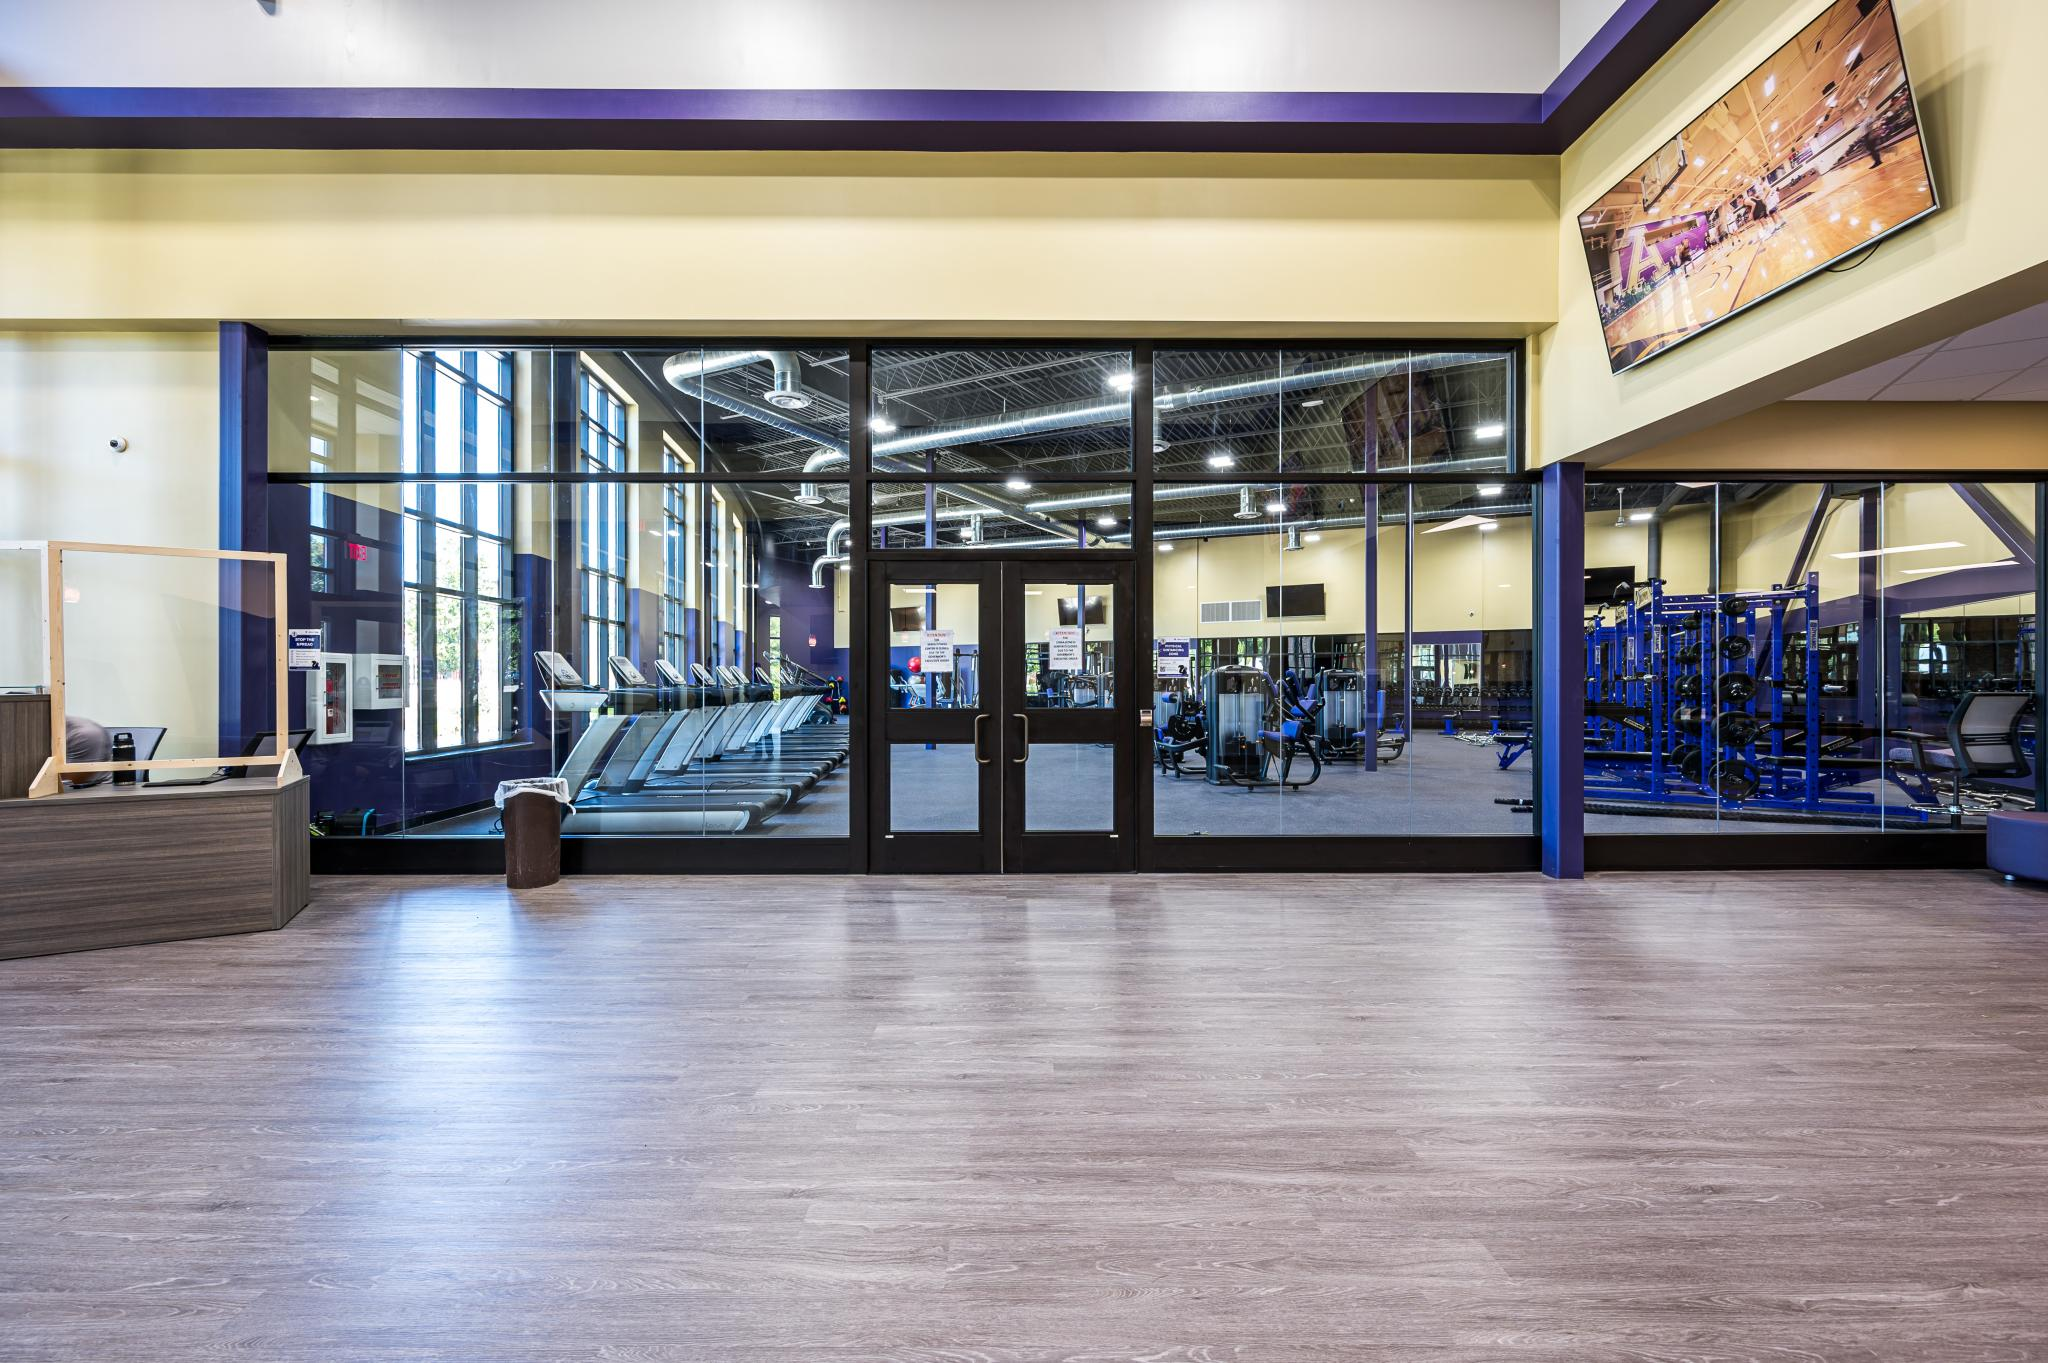 image of pair of glass doors into a room with fitness equipment